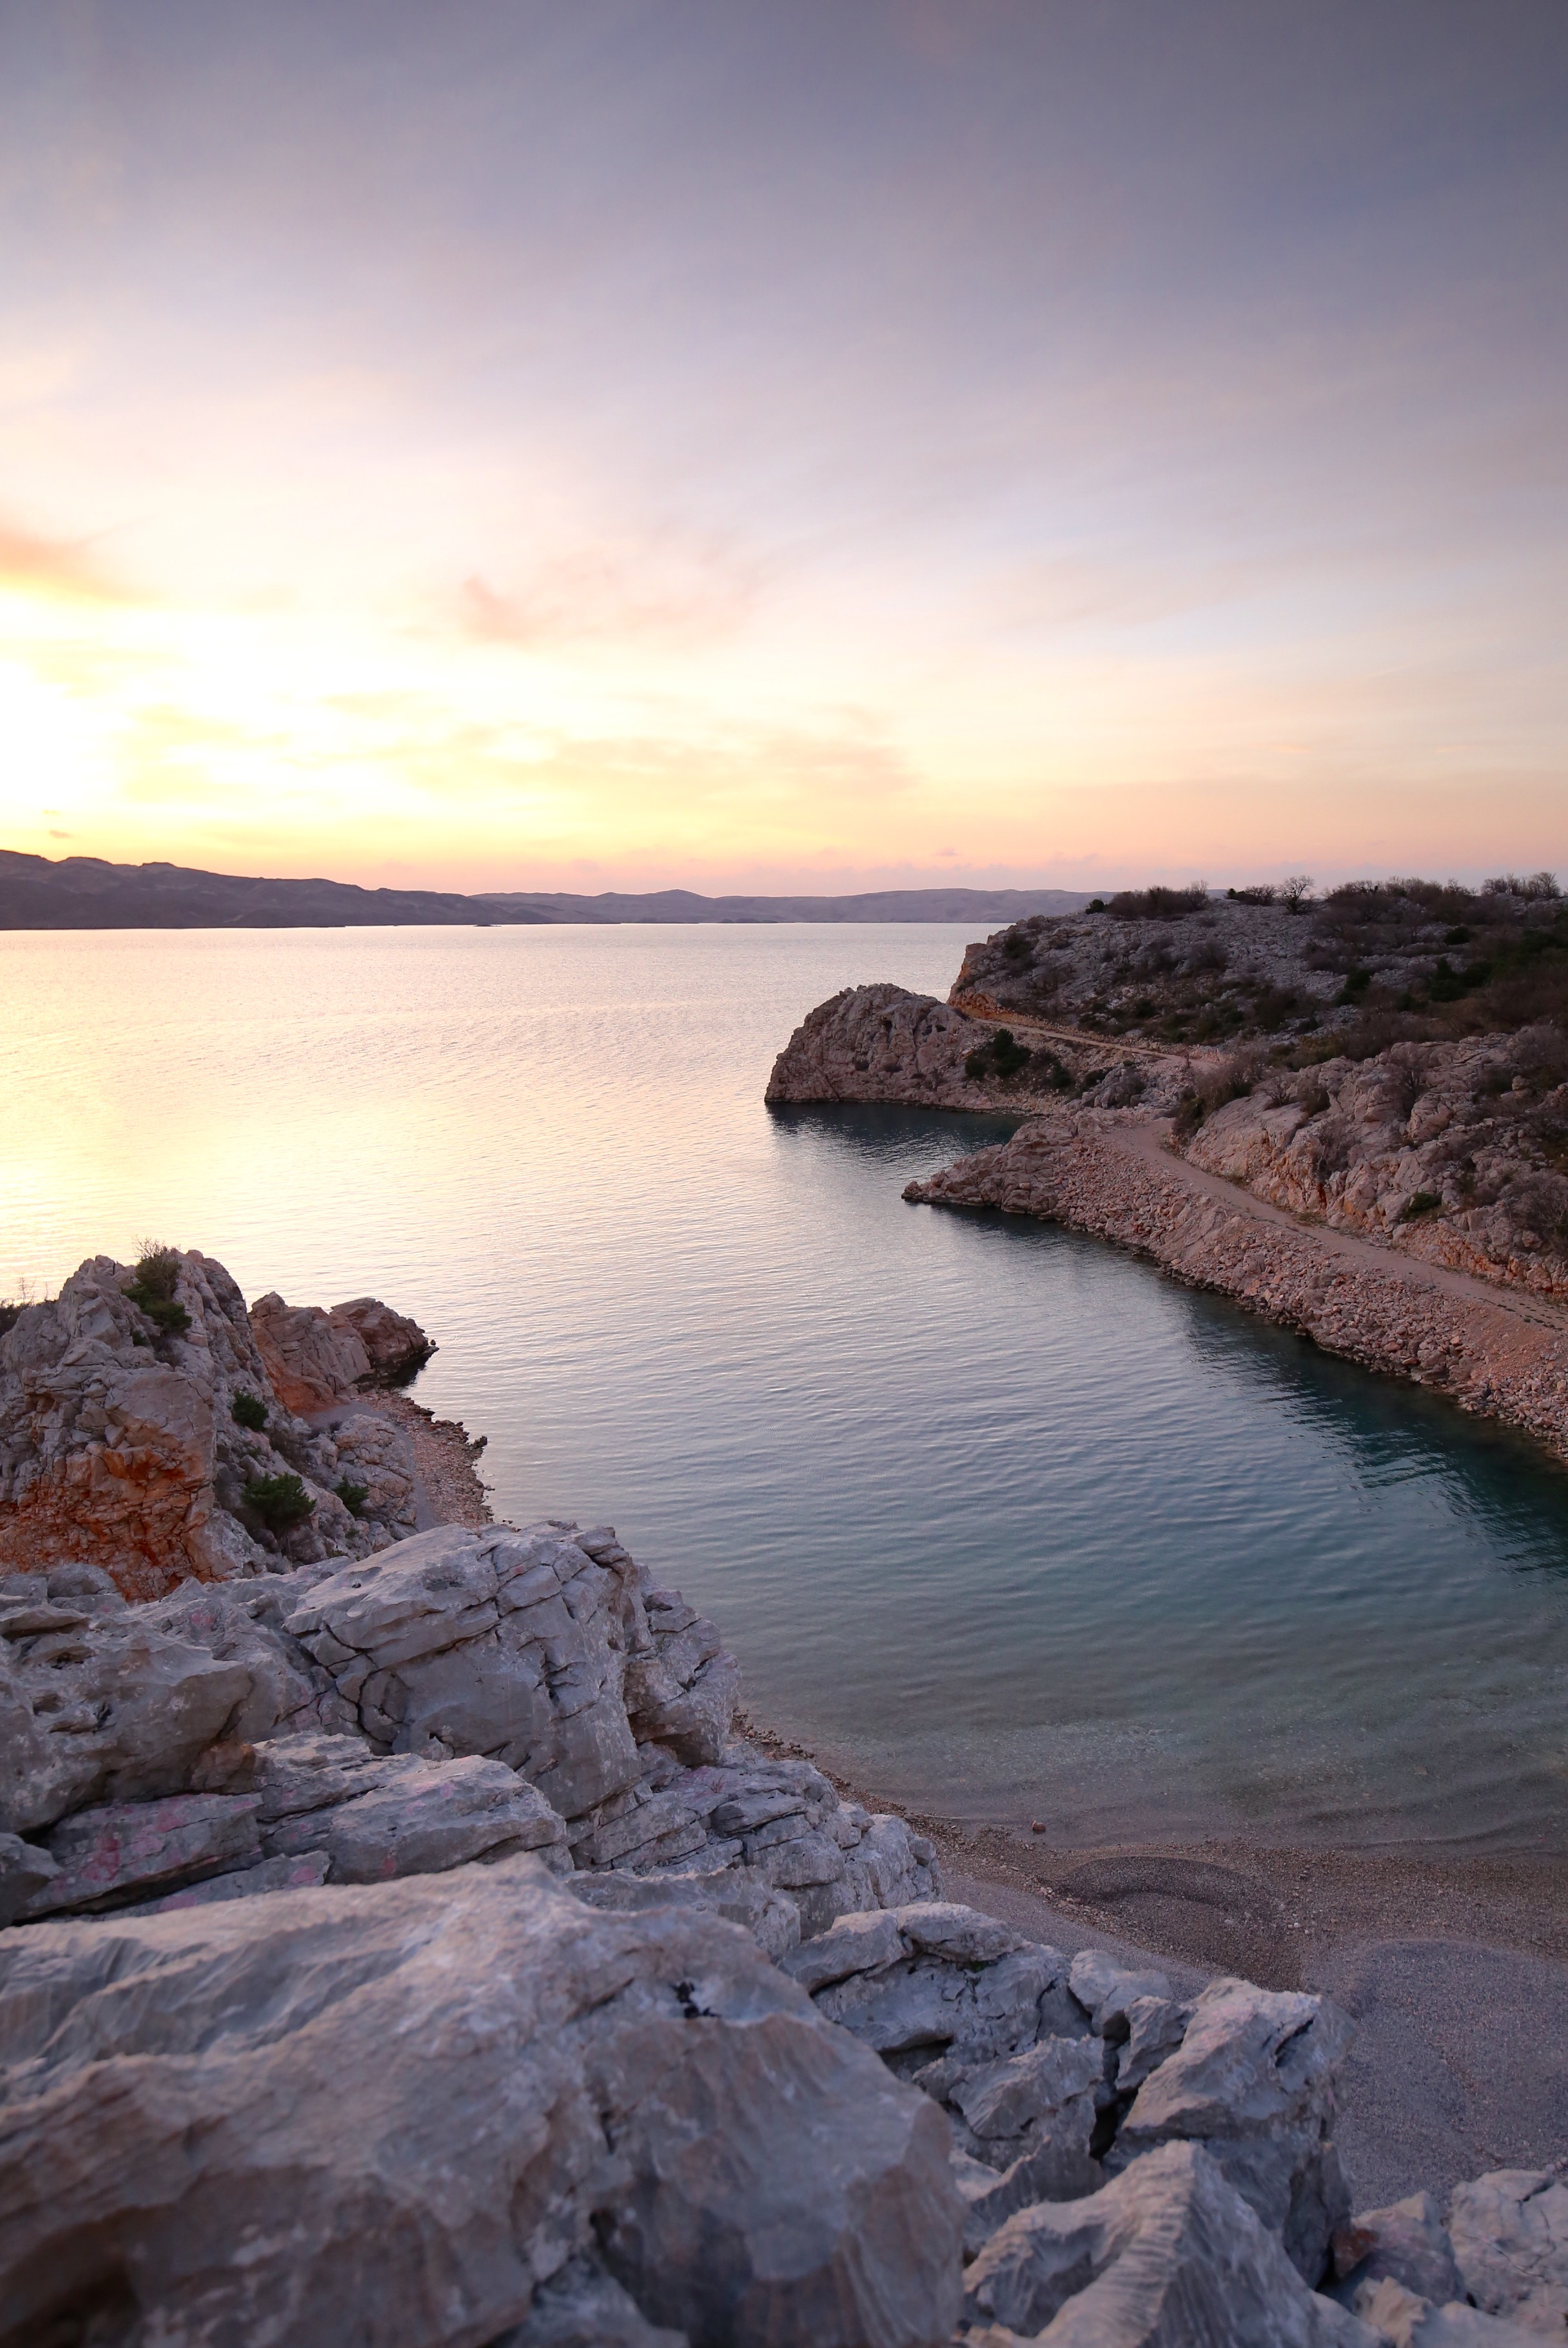 Sunset over the coves by the adriatic sea.